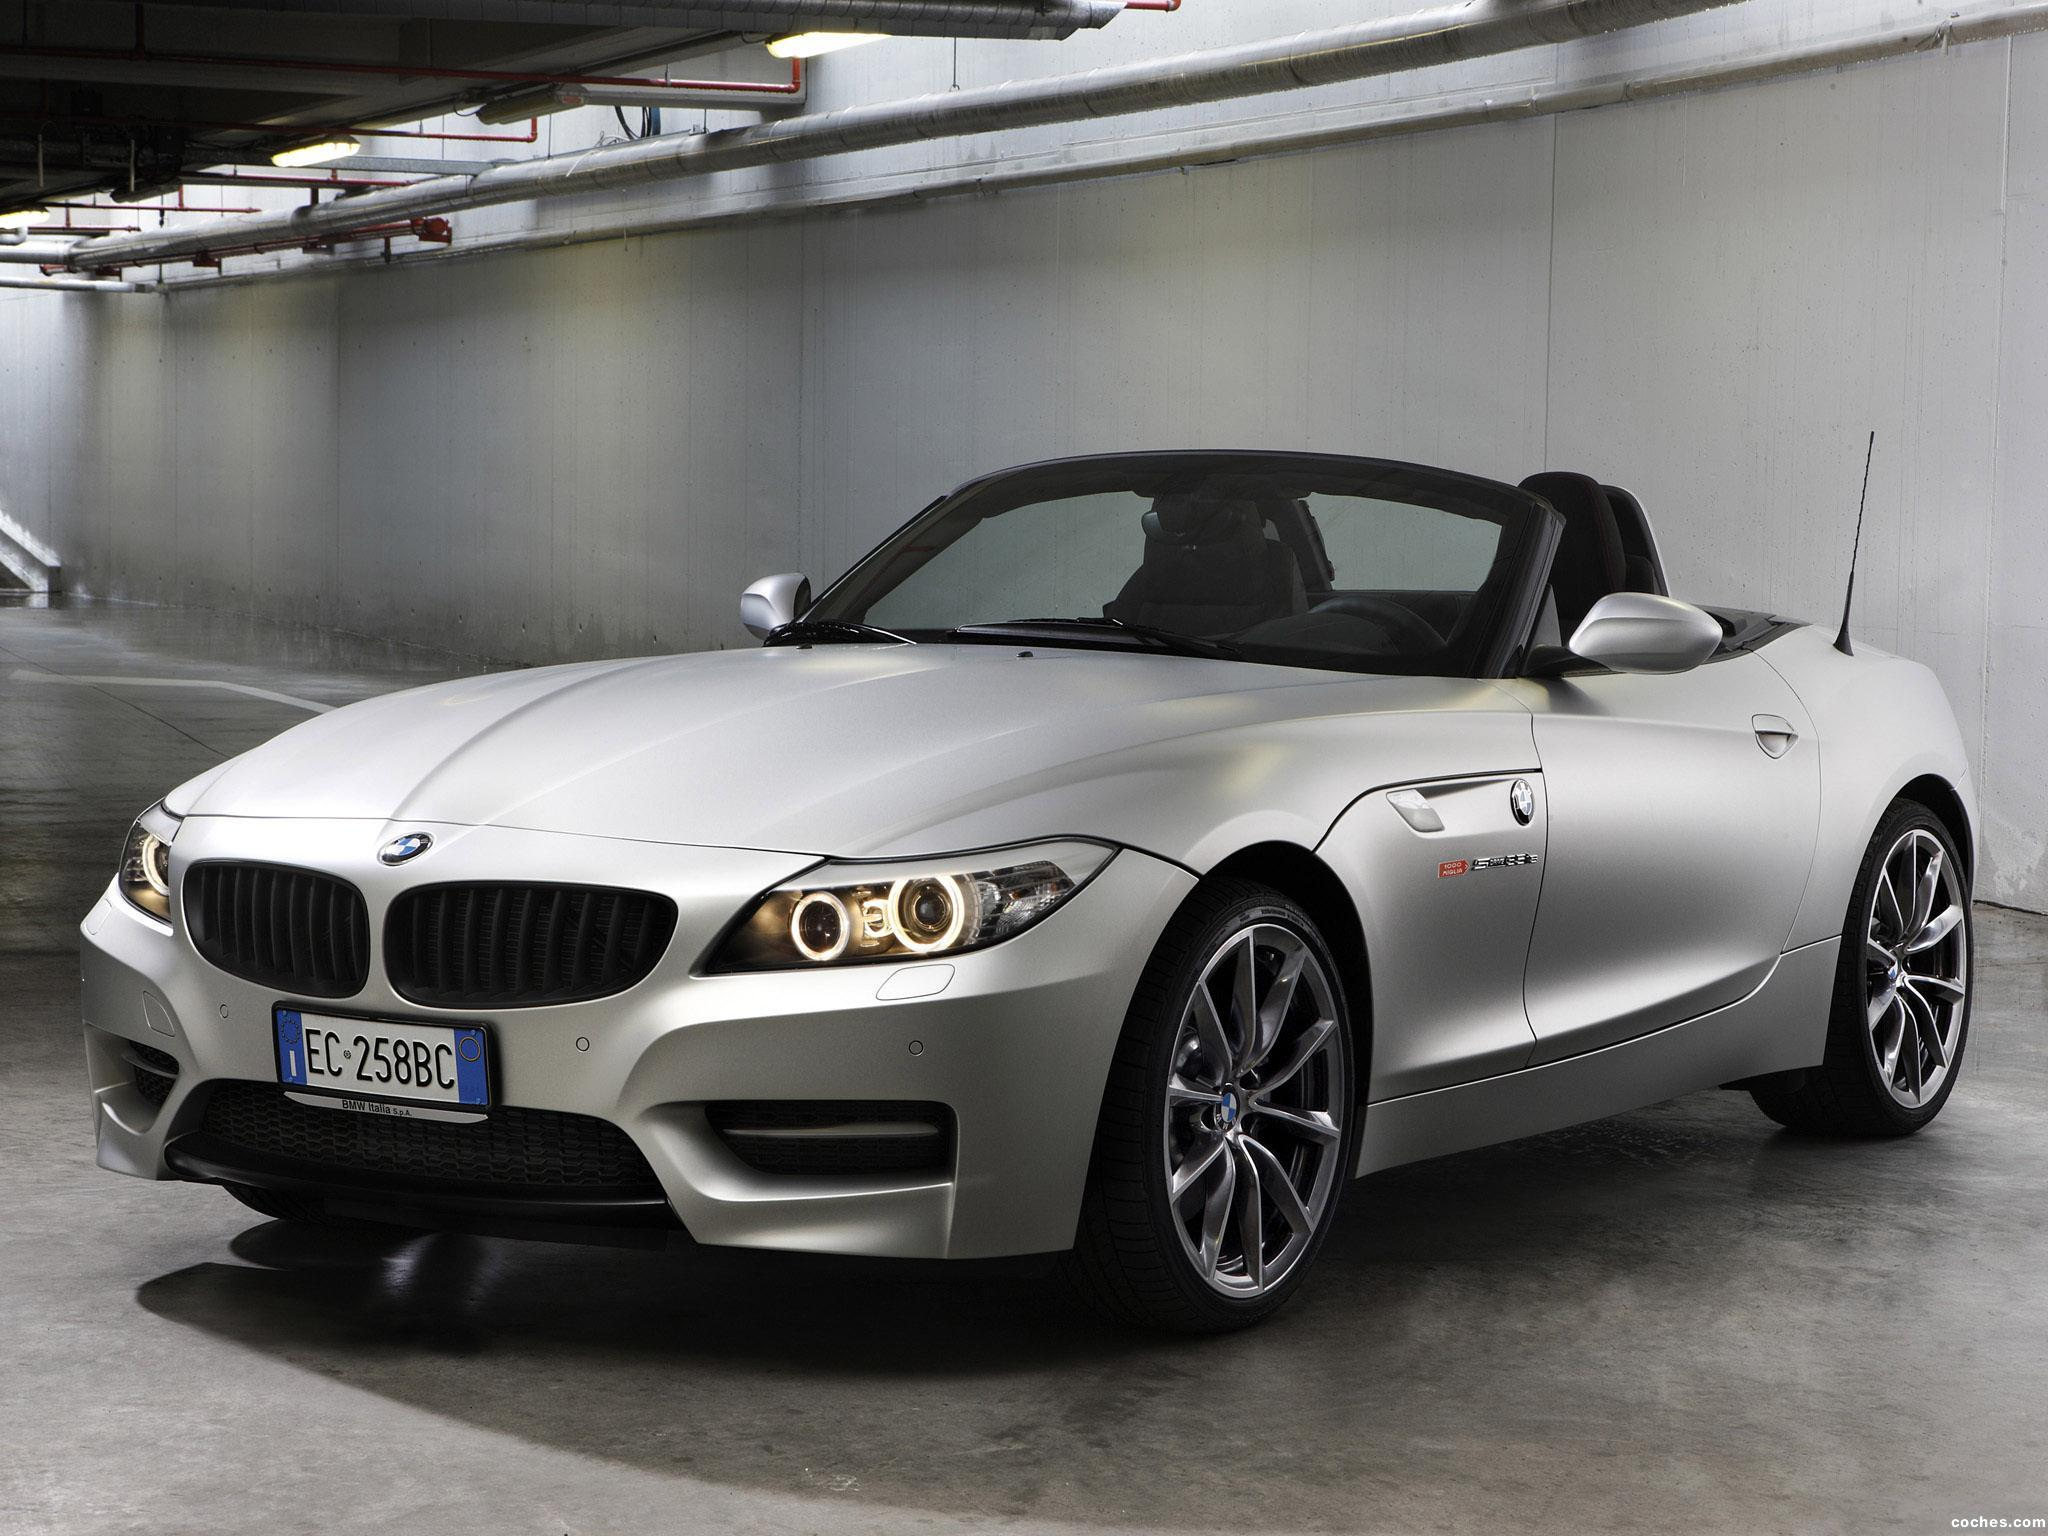 Foto 0 de BMW sDrive35is Roadster Mille Miglia Limited Edit 2010